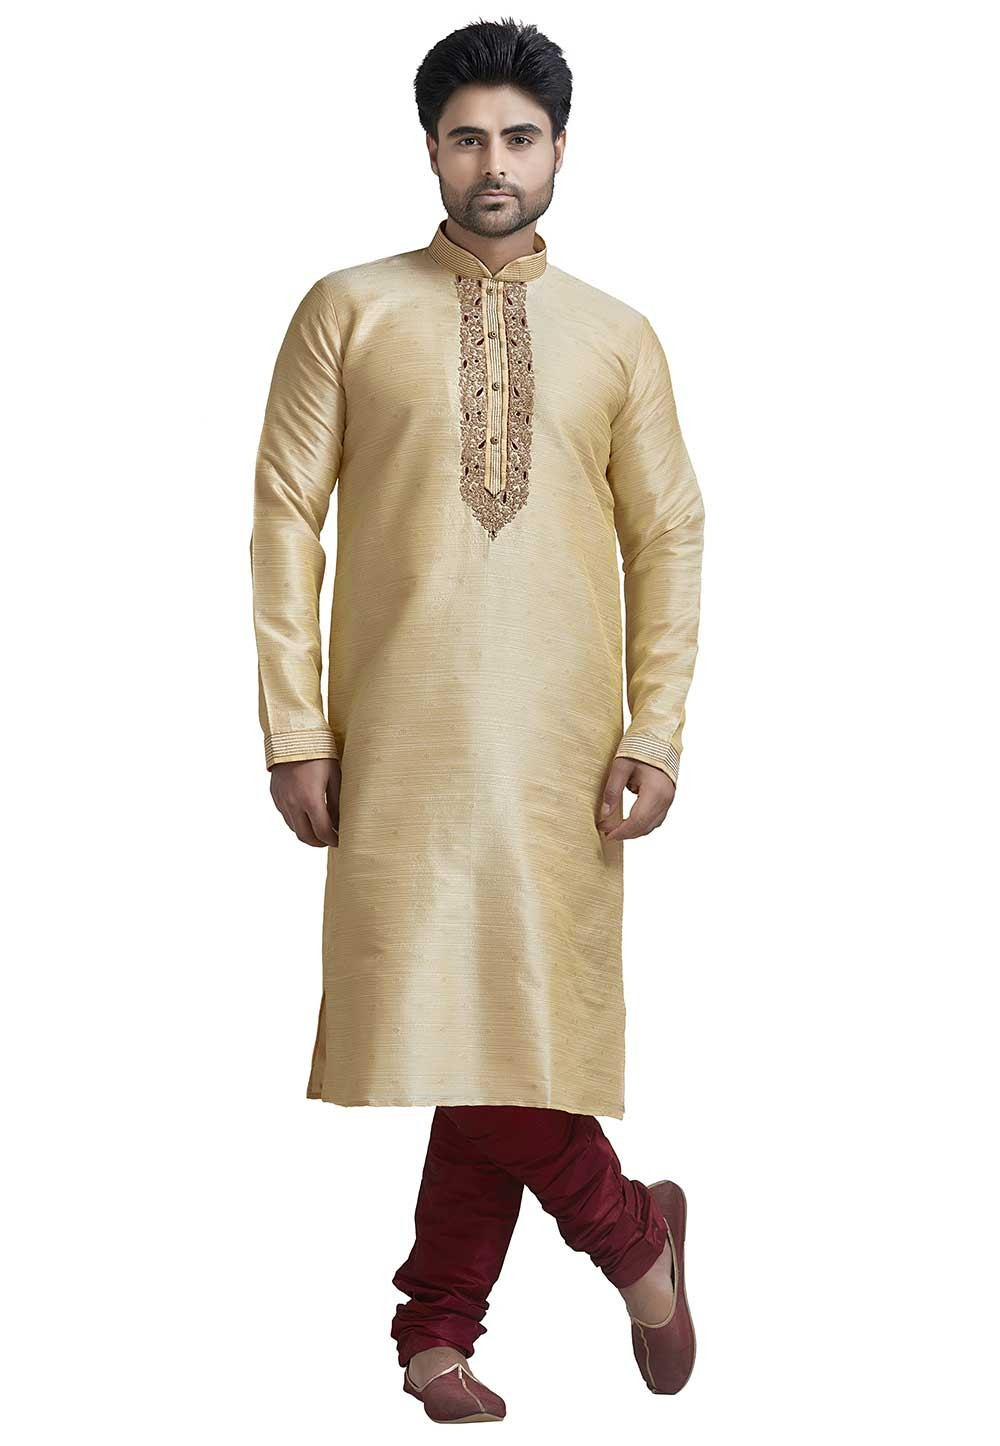 Designer: Buy Kurta Pyjama Online in Cream Colour